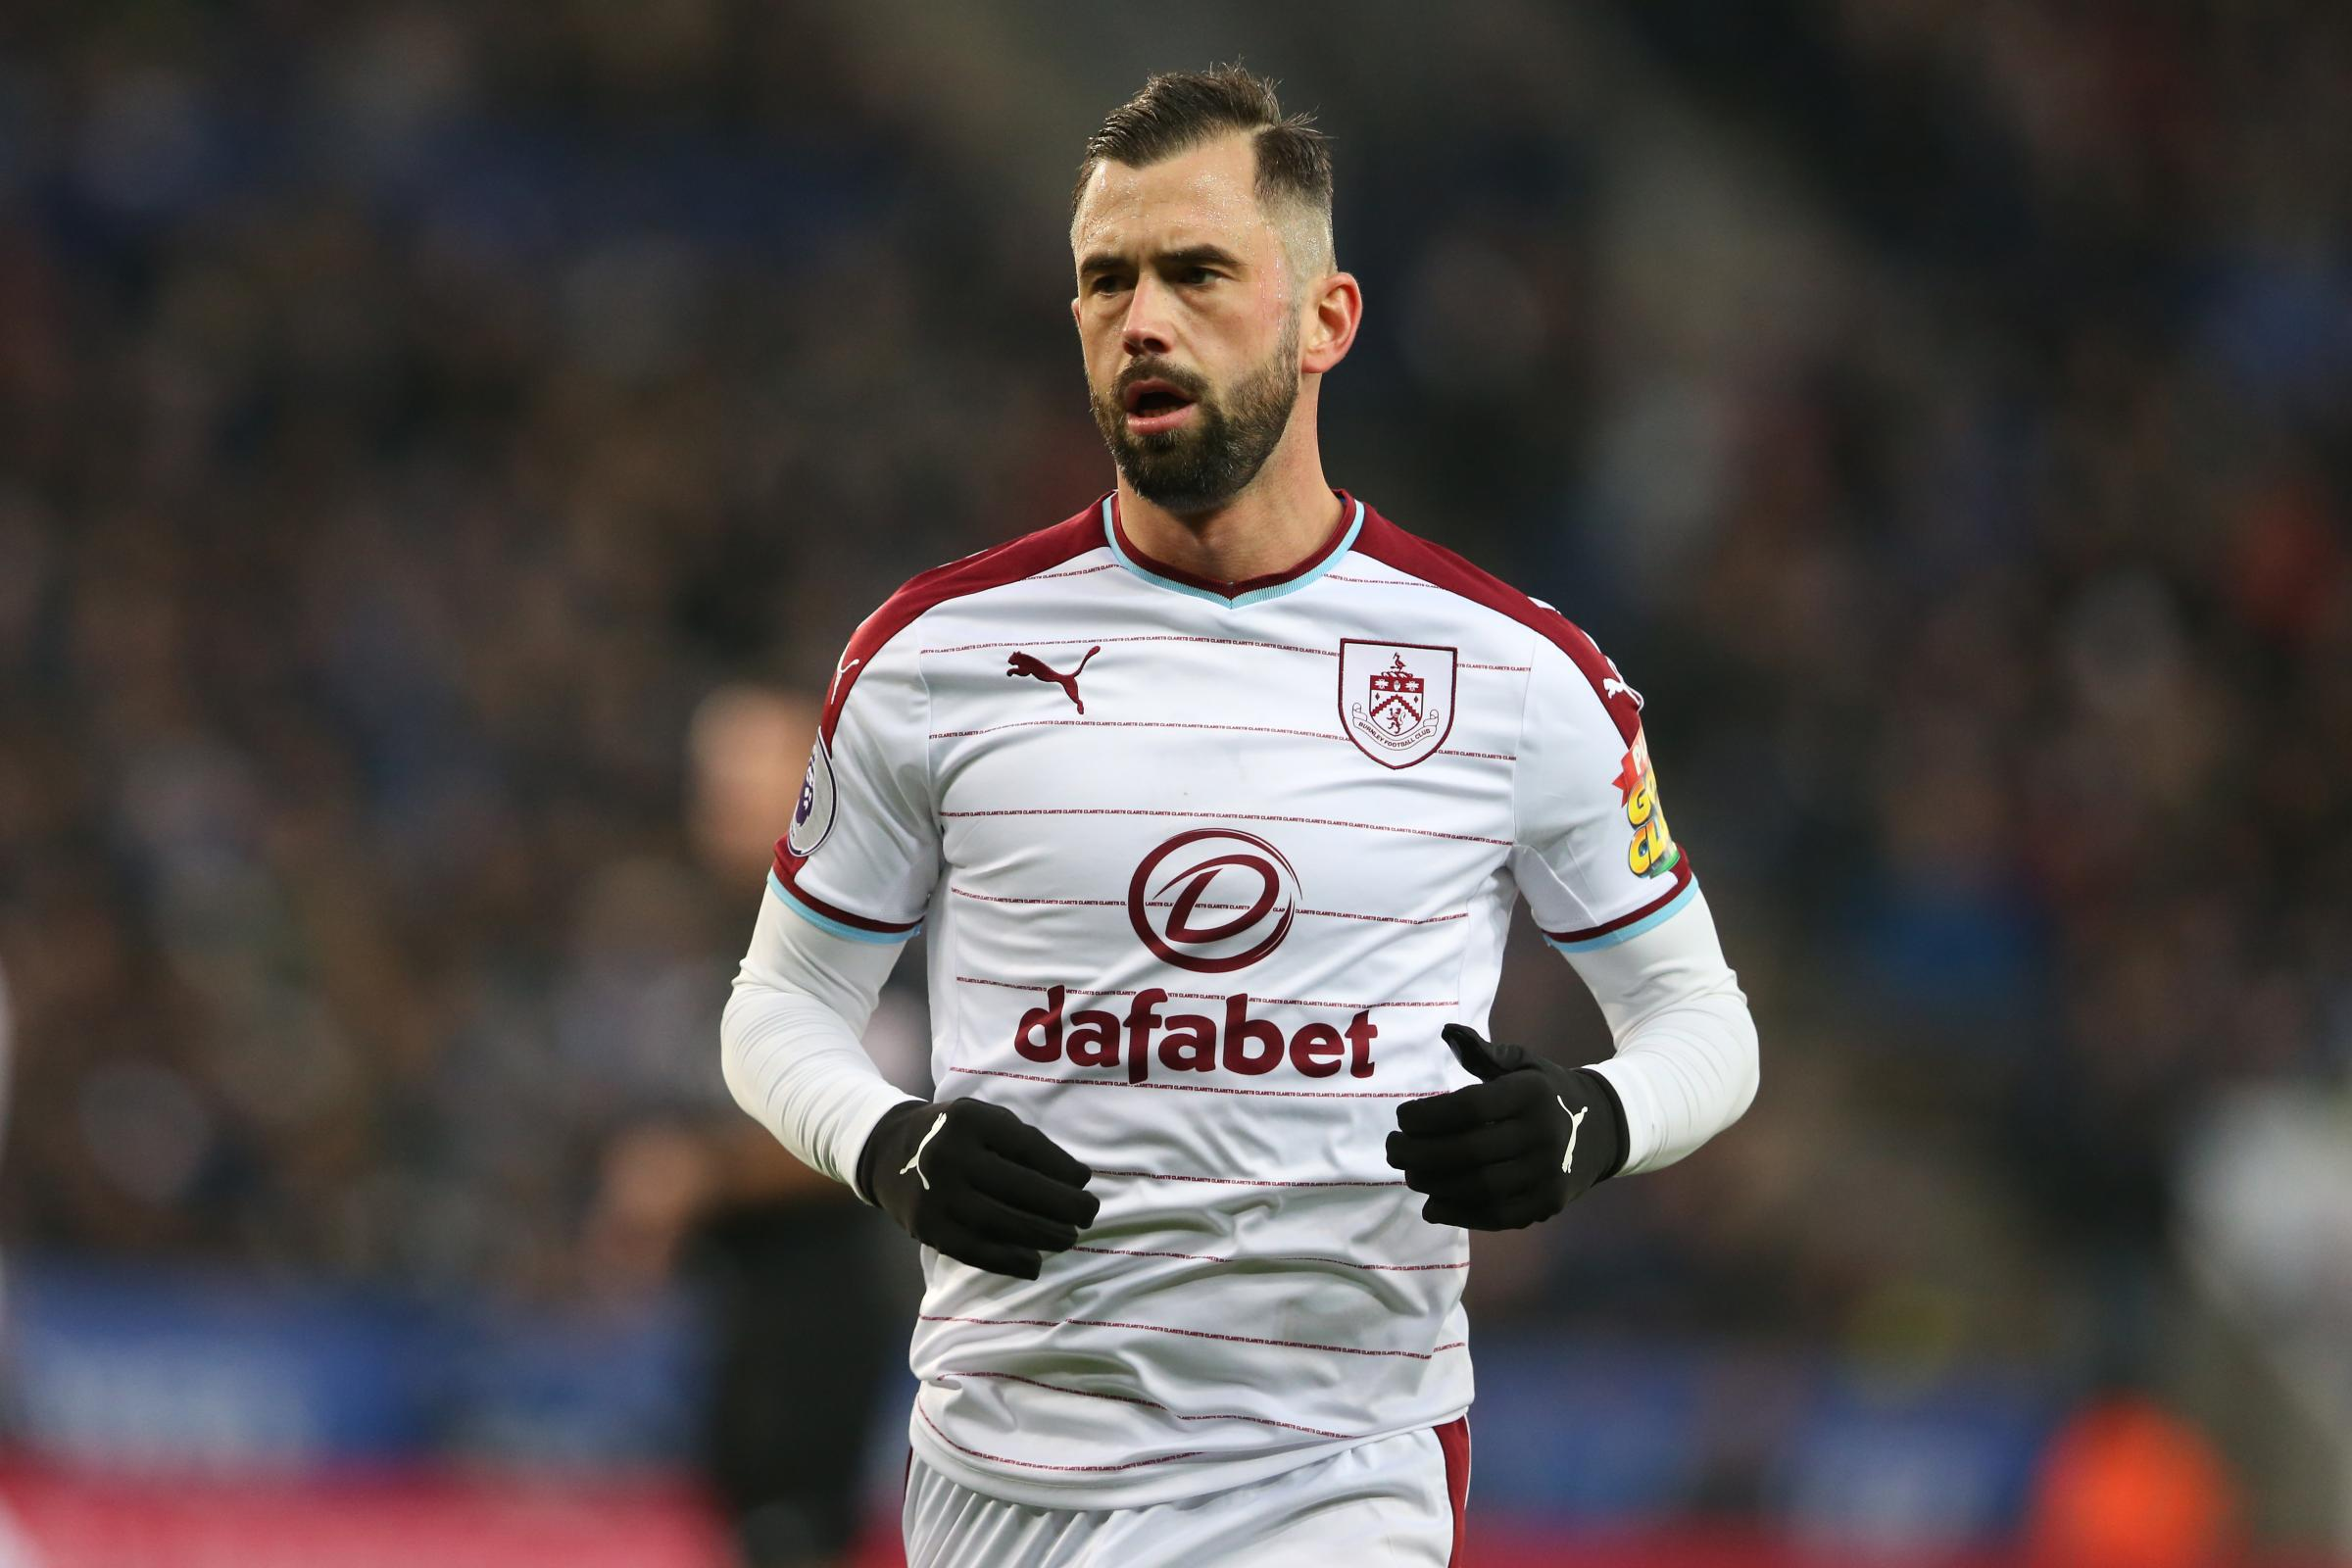 Steven Defour has hailed Burnley's team spirit this season